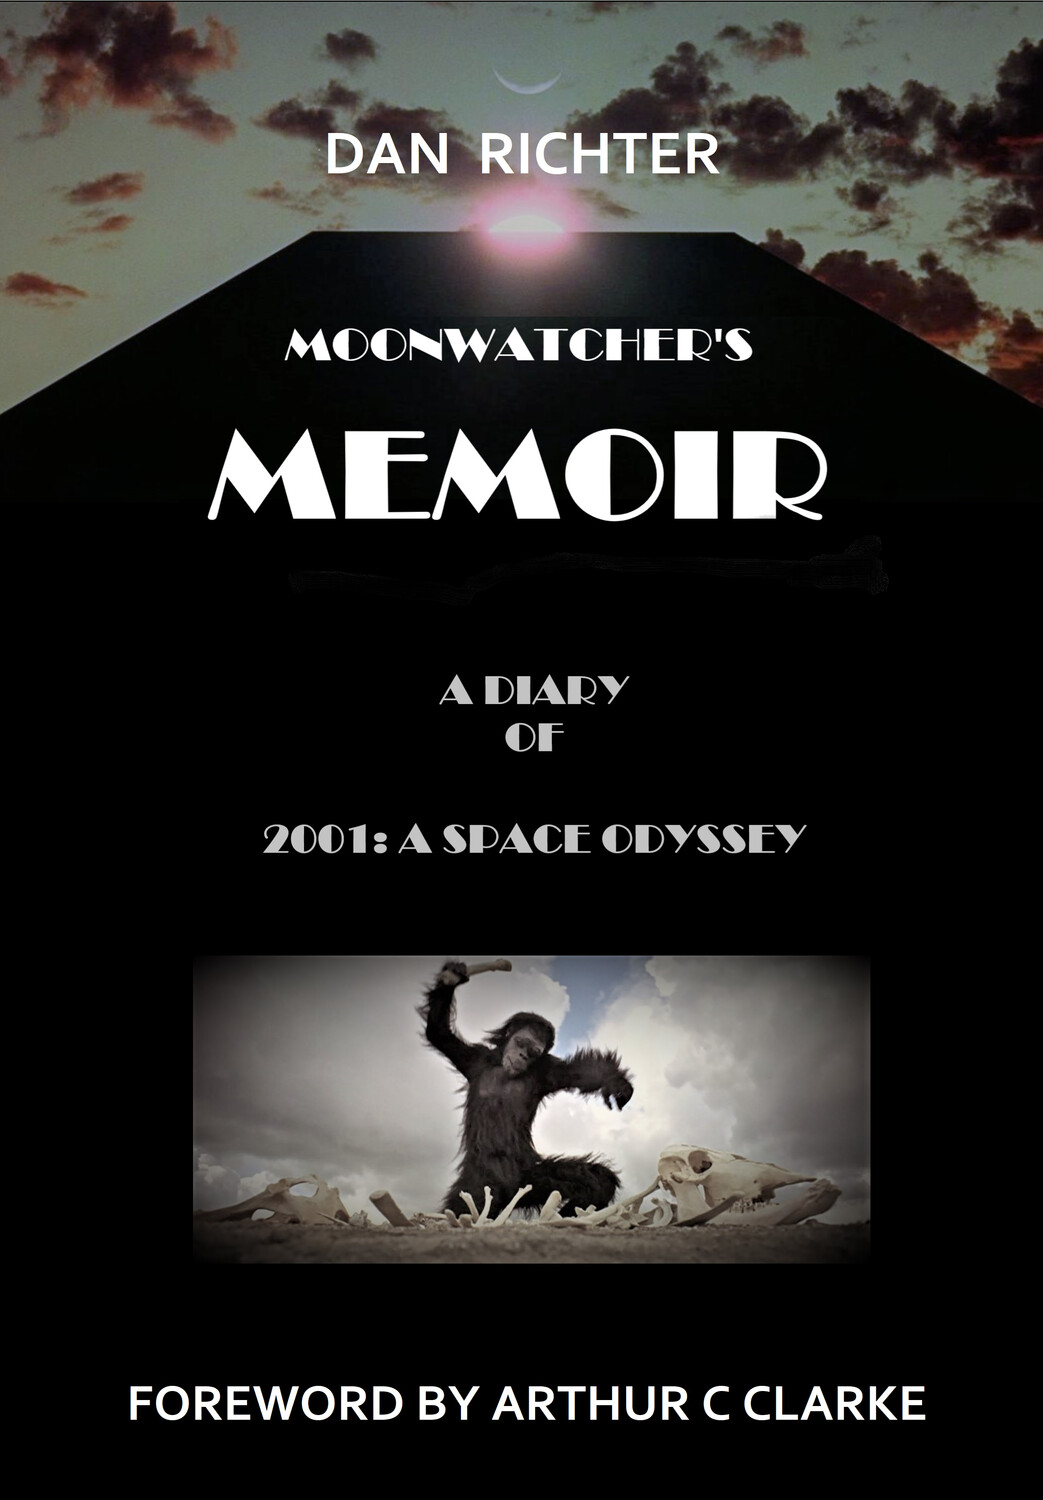 MOONWATCHER'S MEMOIR